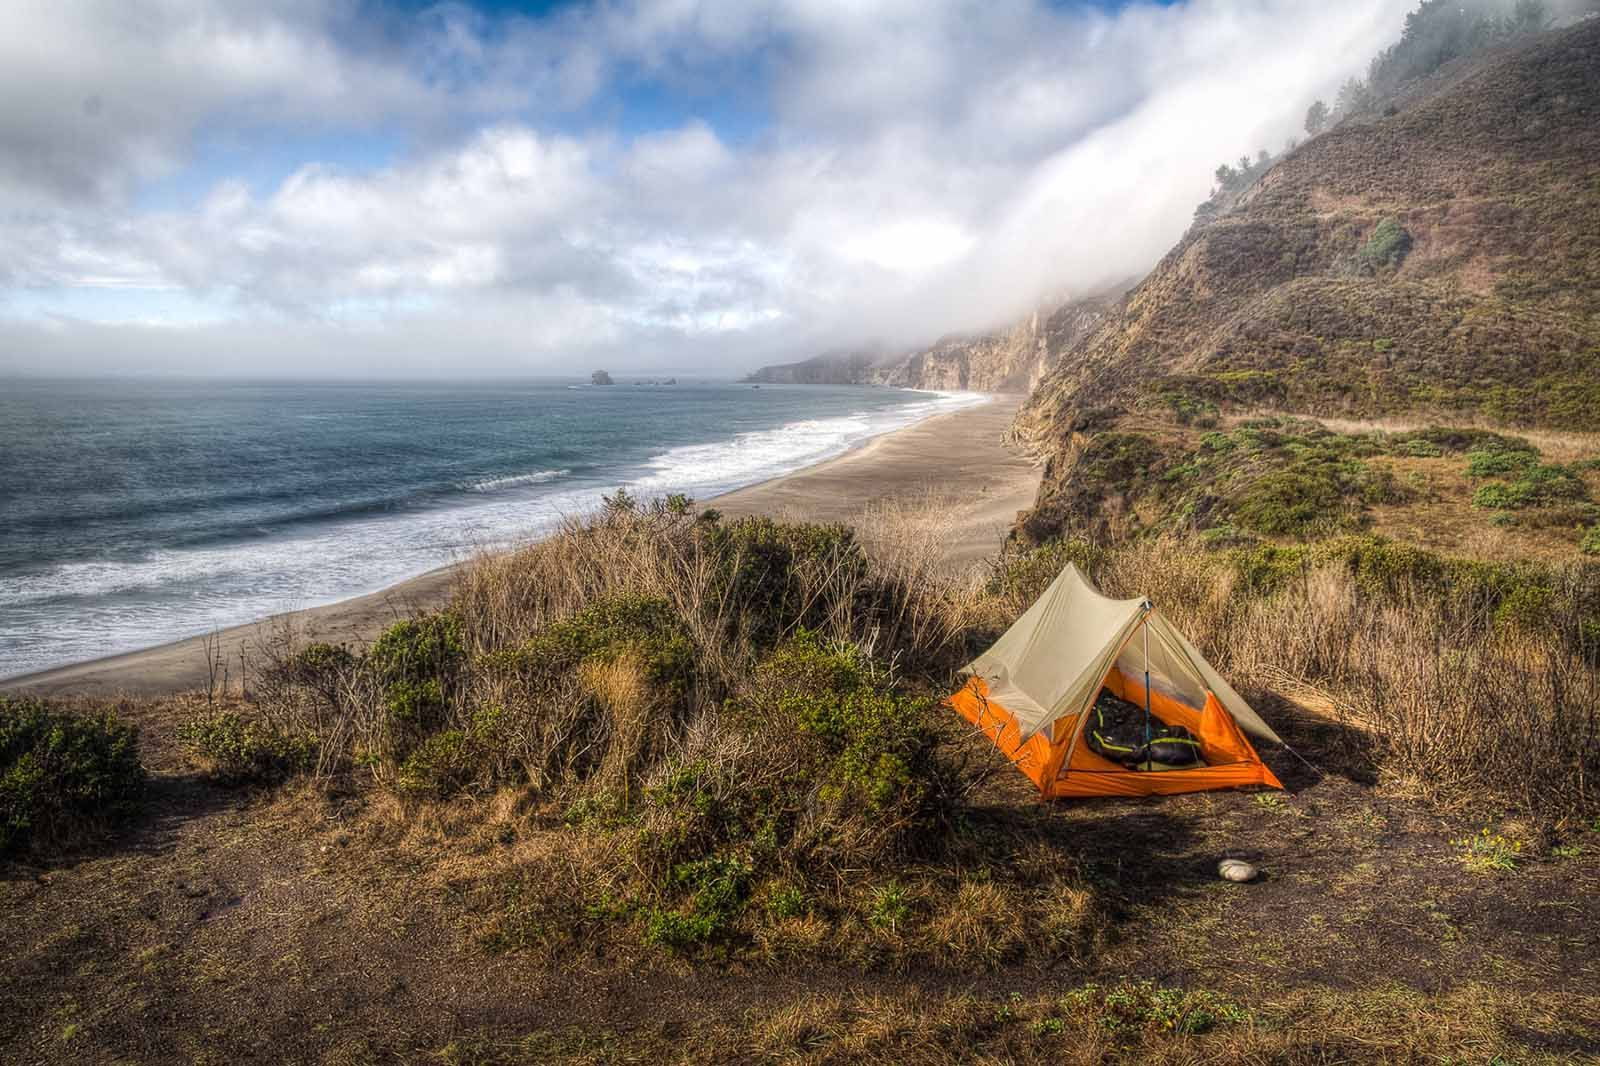 Where to go camping in the San Francisco Bay Area